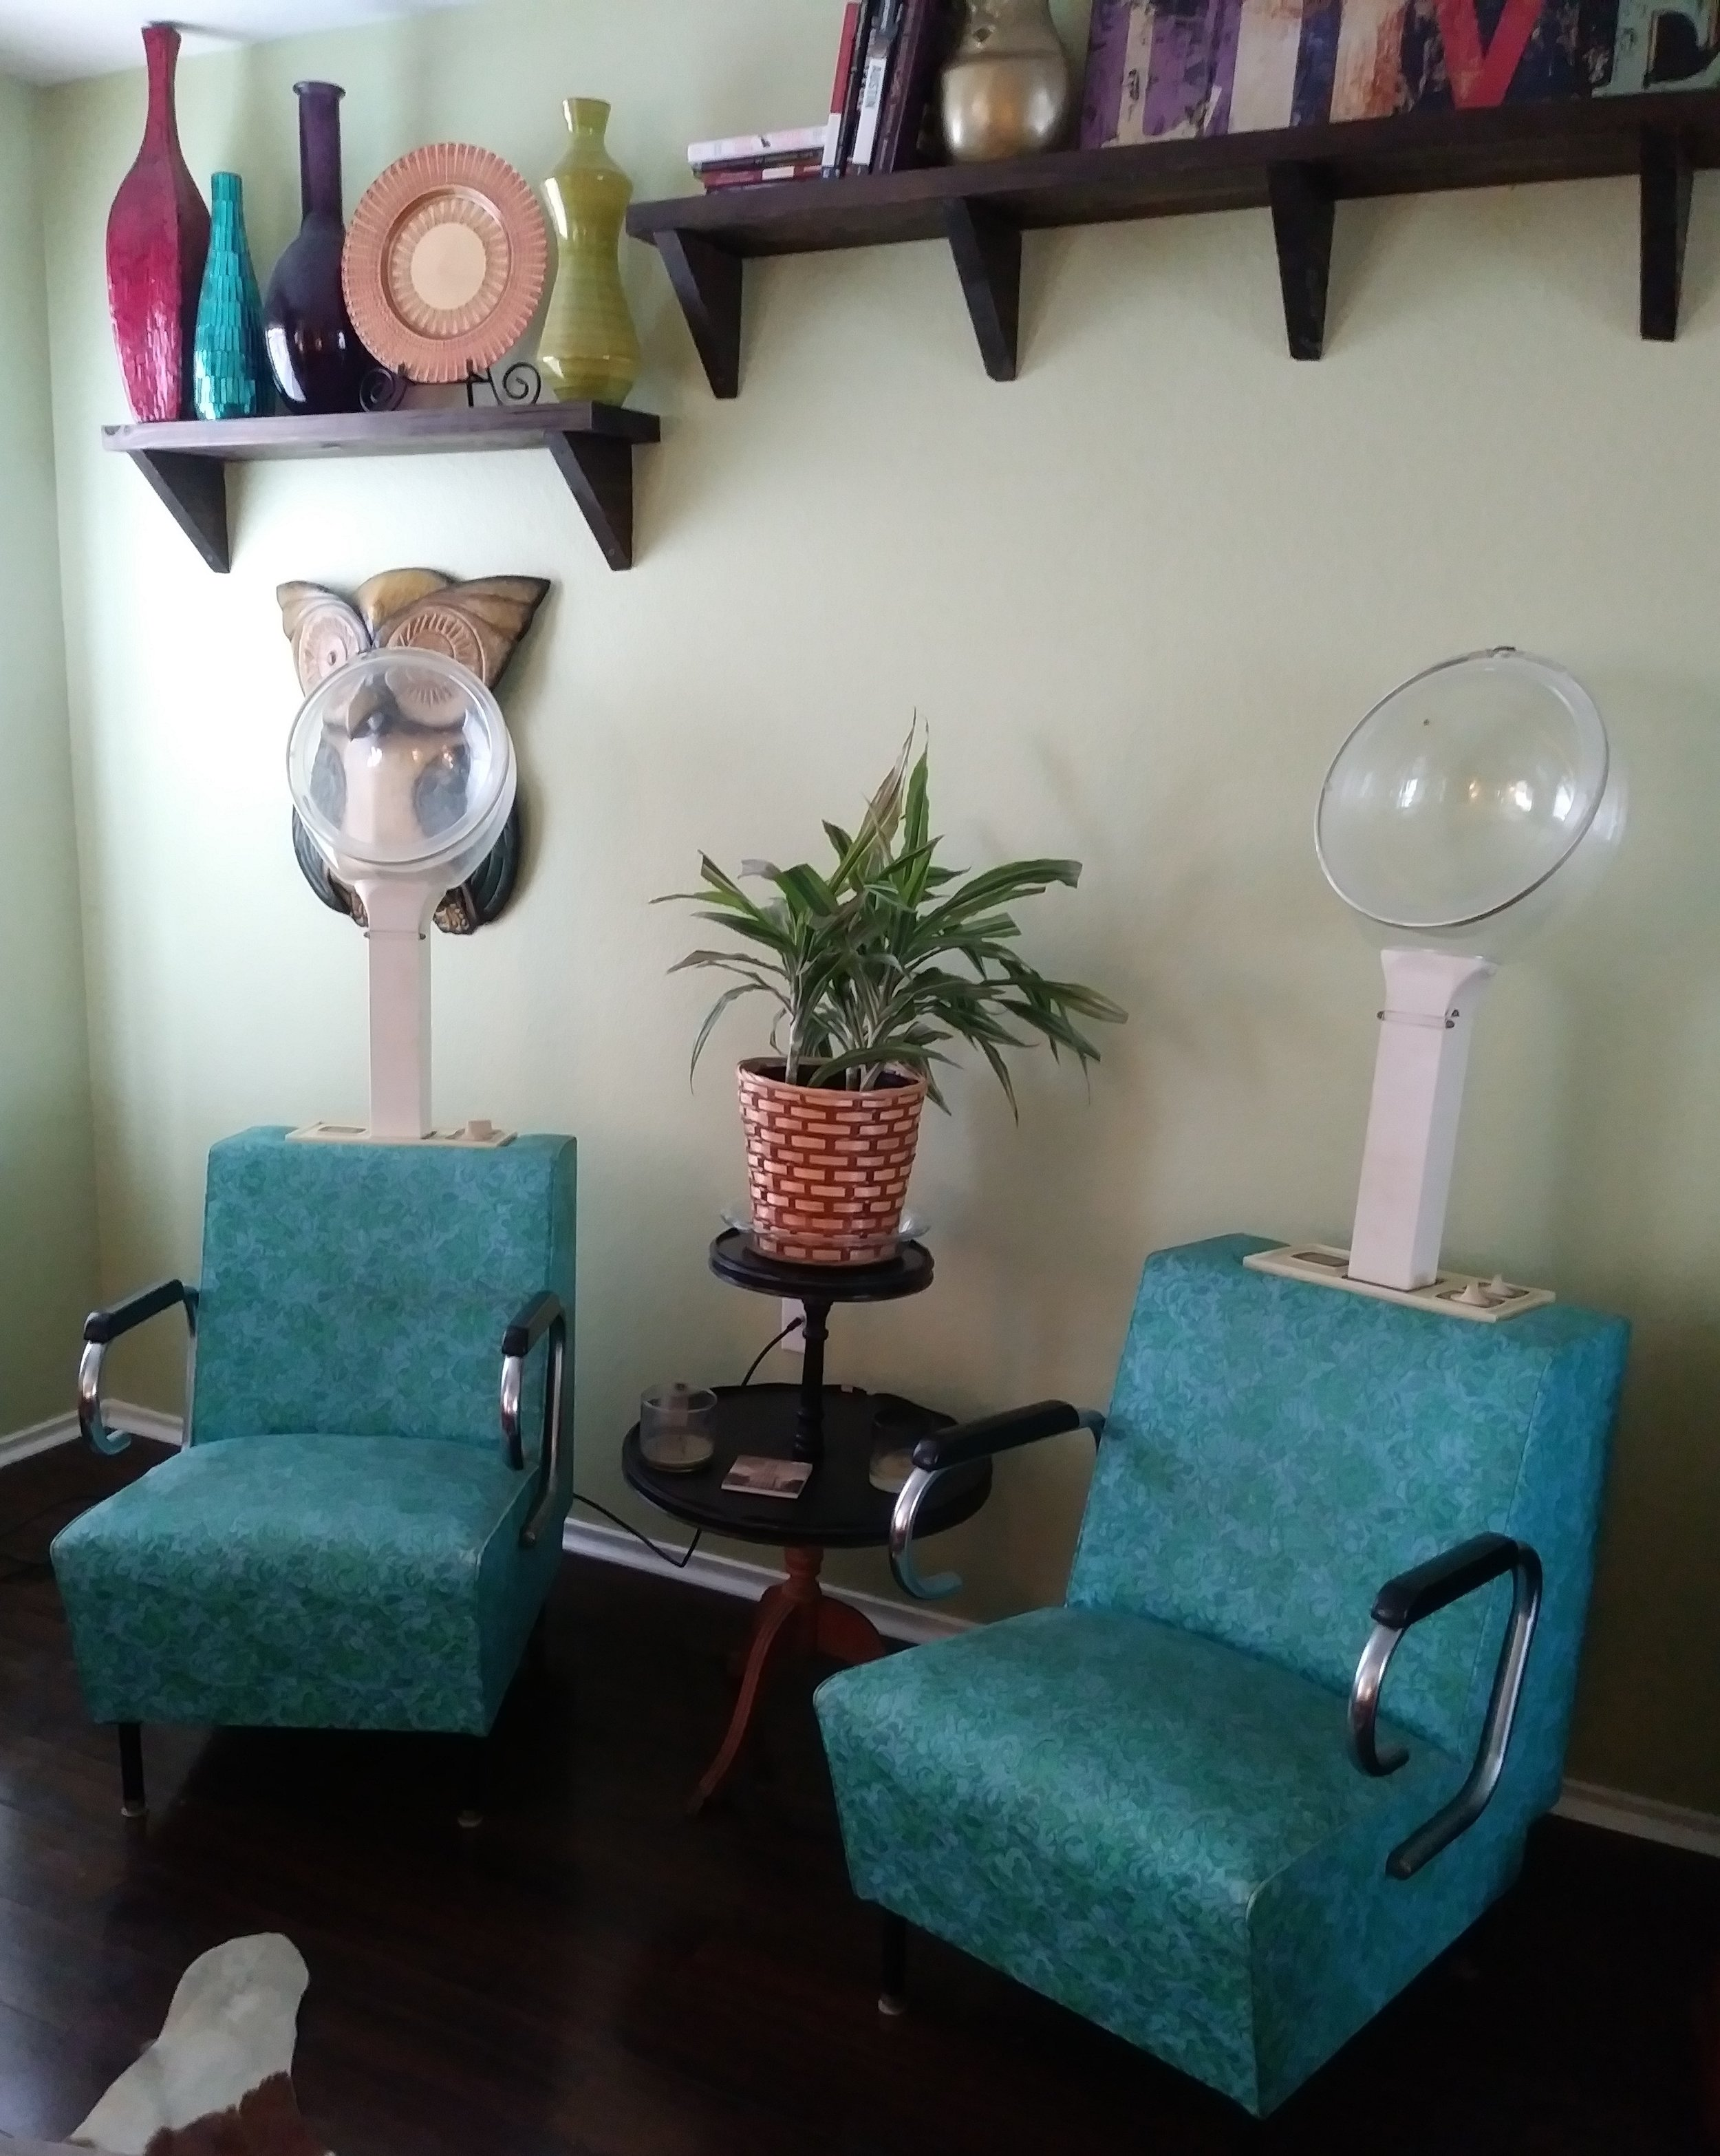 Coriander AirBnB, Austin, TX Adorable beauty shop chairs in the living room